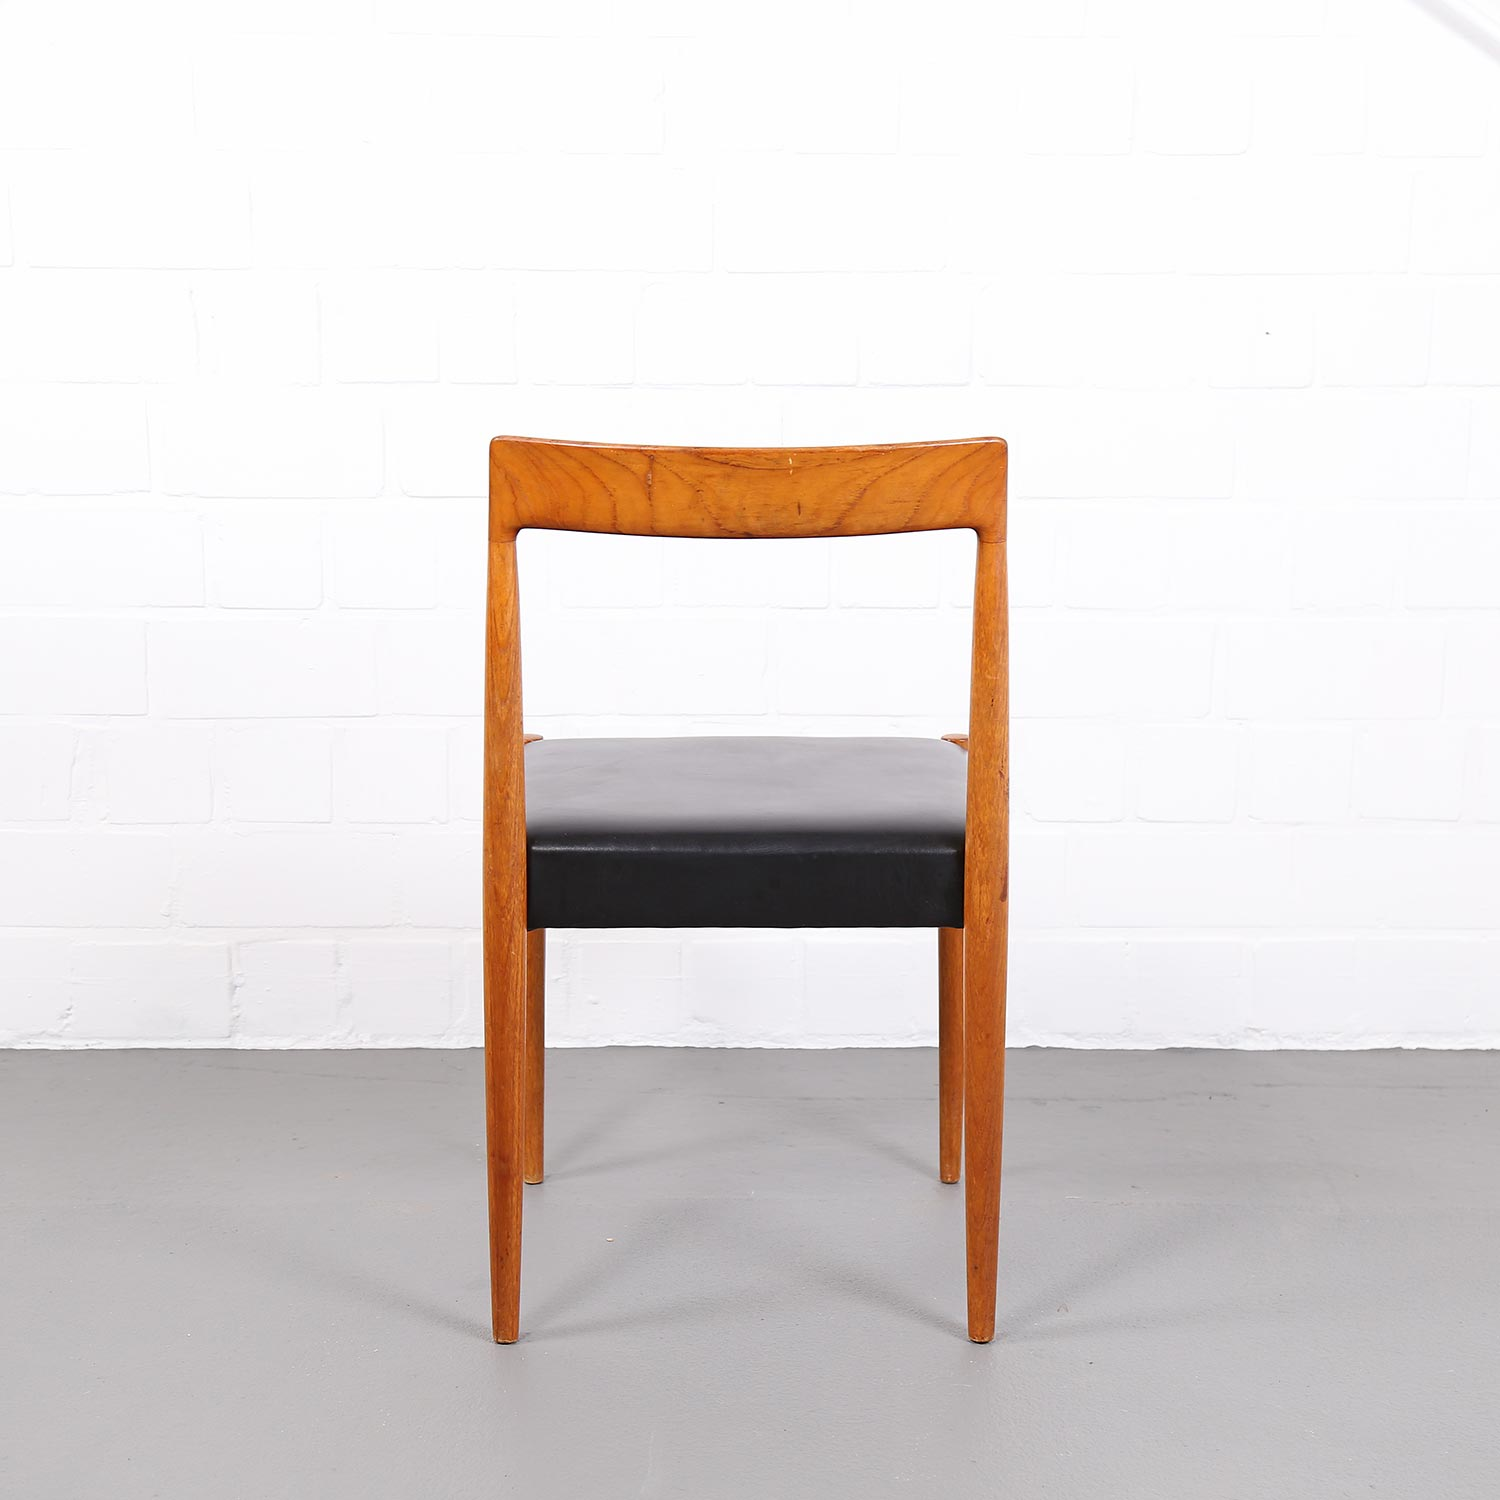 Danish Chair Plans Dining Chairs Luebke Minimalsm Danish Design